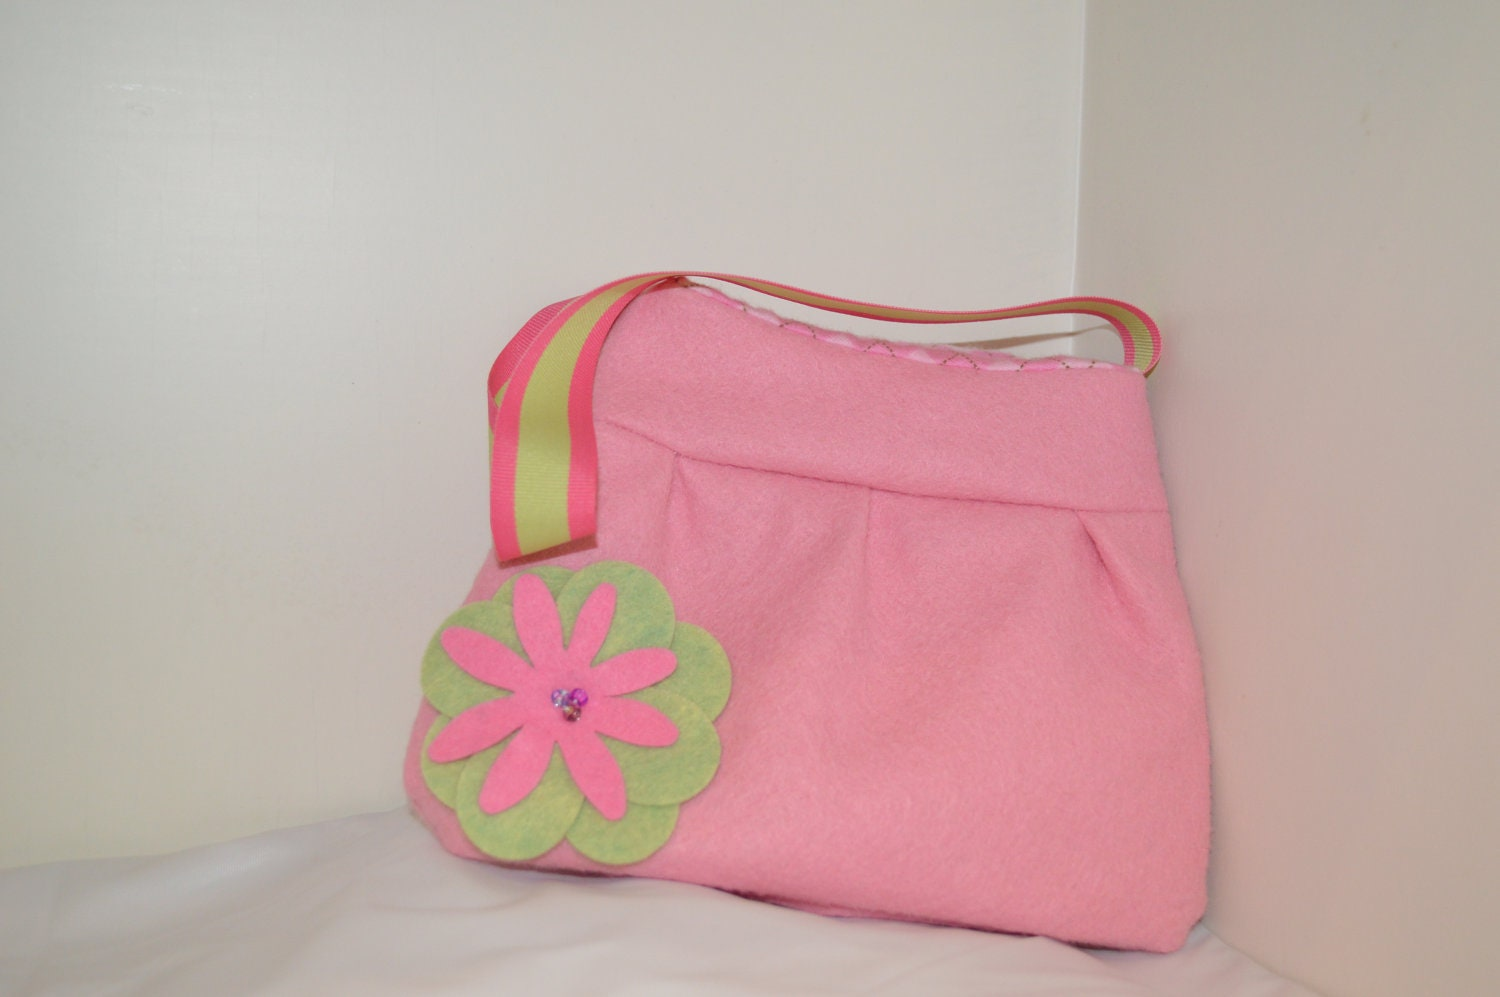 Little Girl Soft Pink Felt Purse- Argyle Lining Pink & Green flower